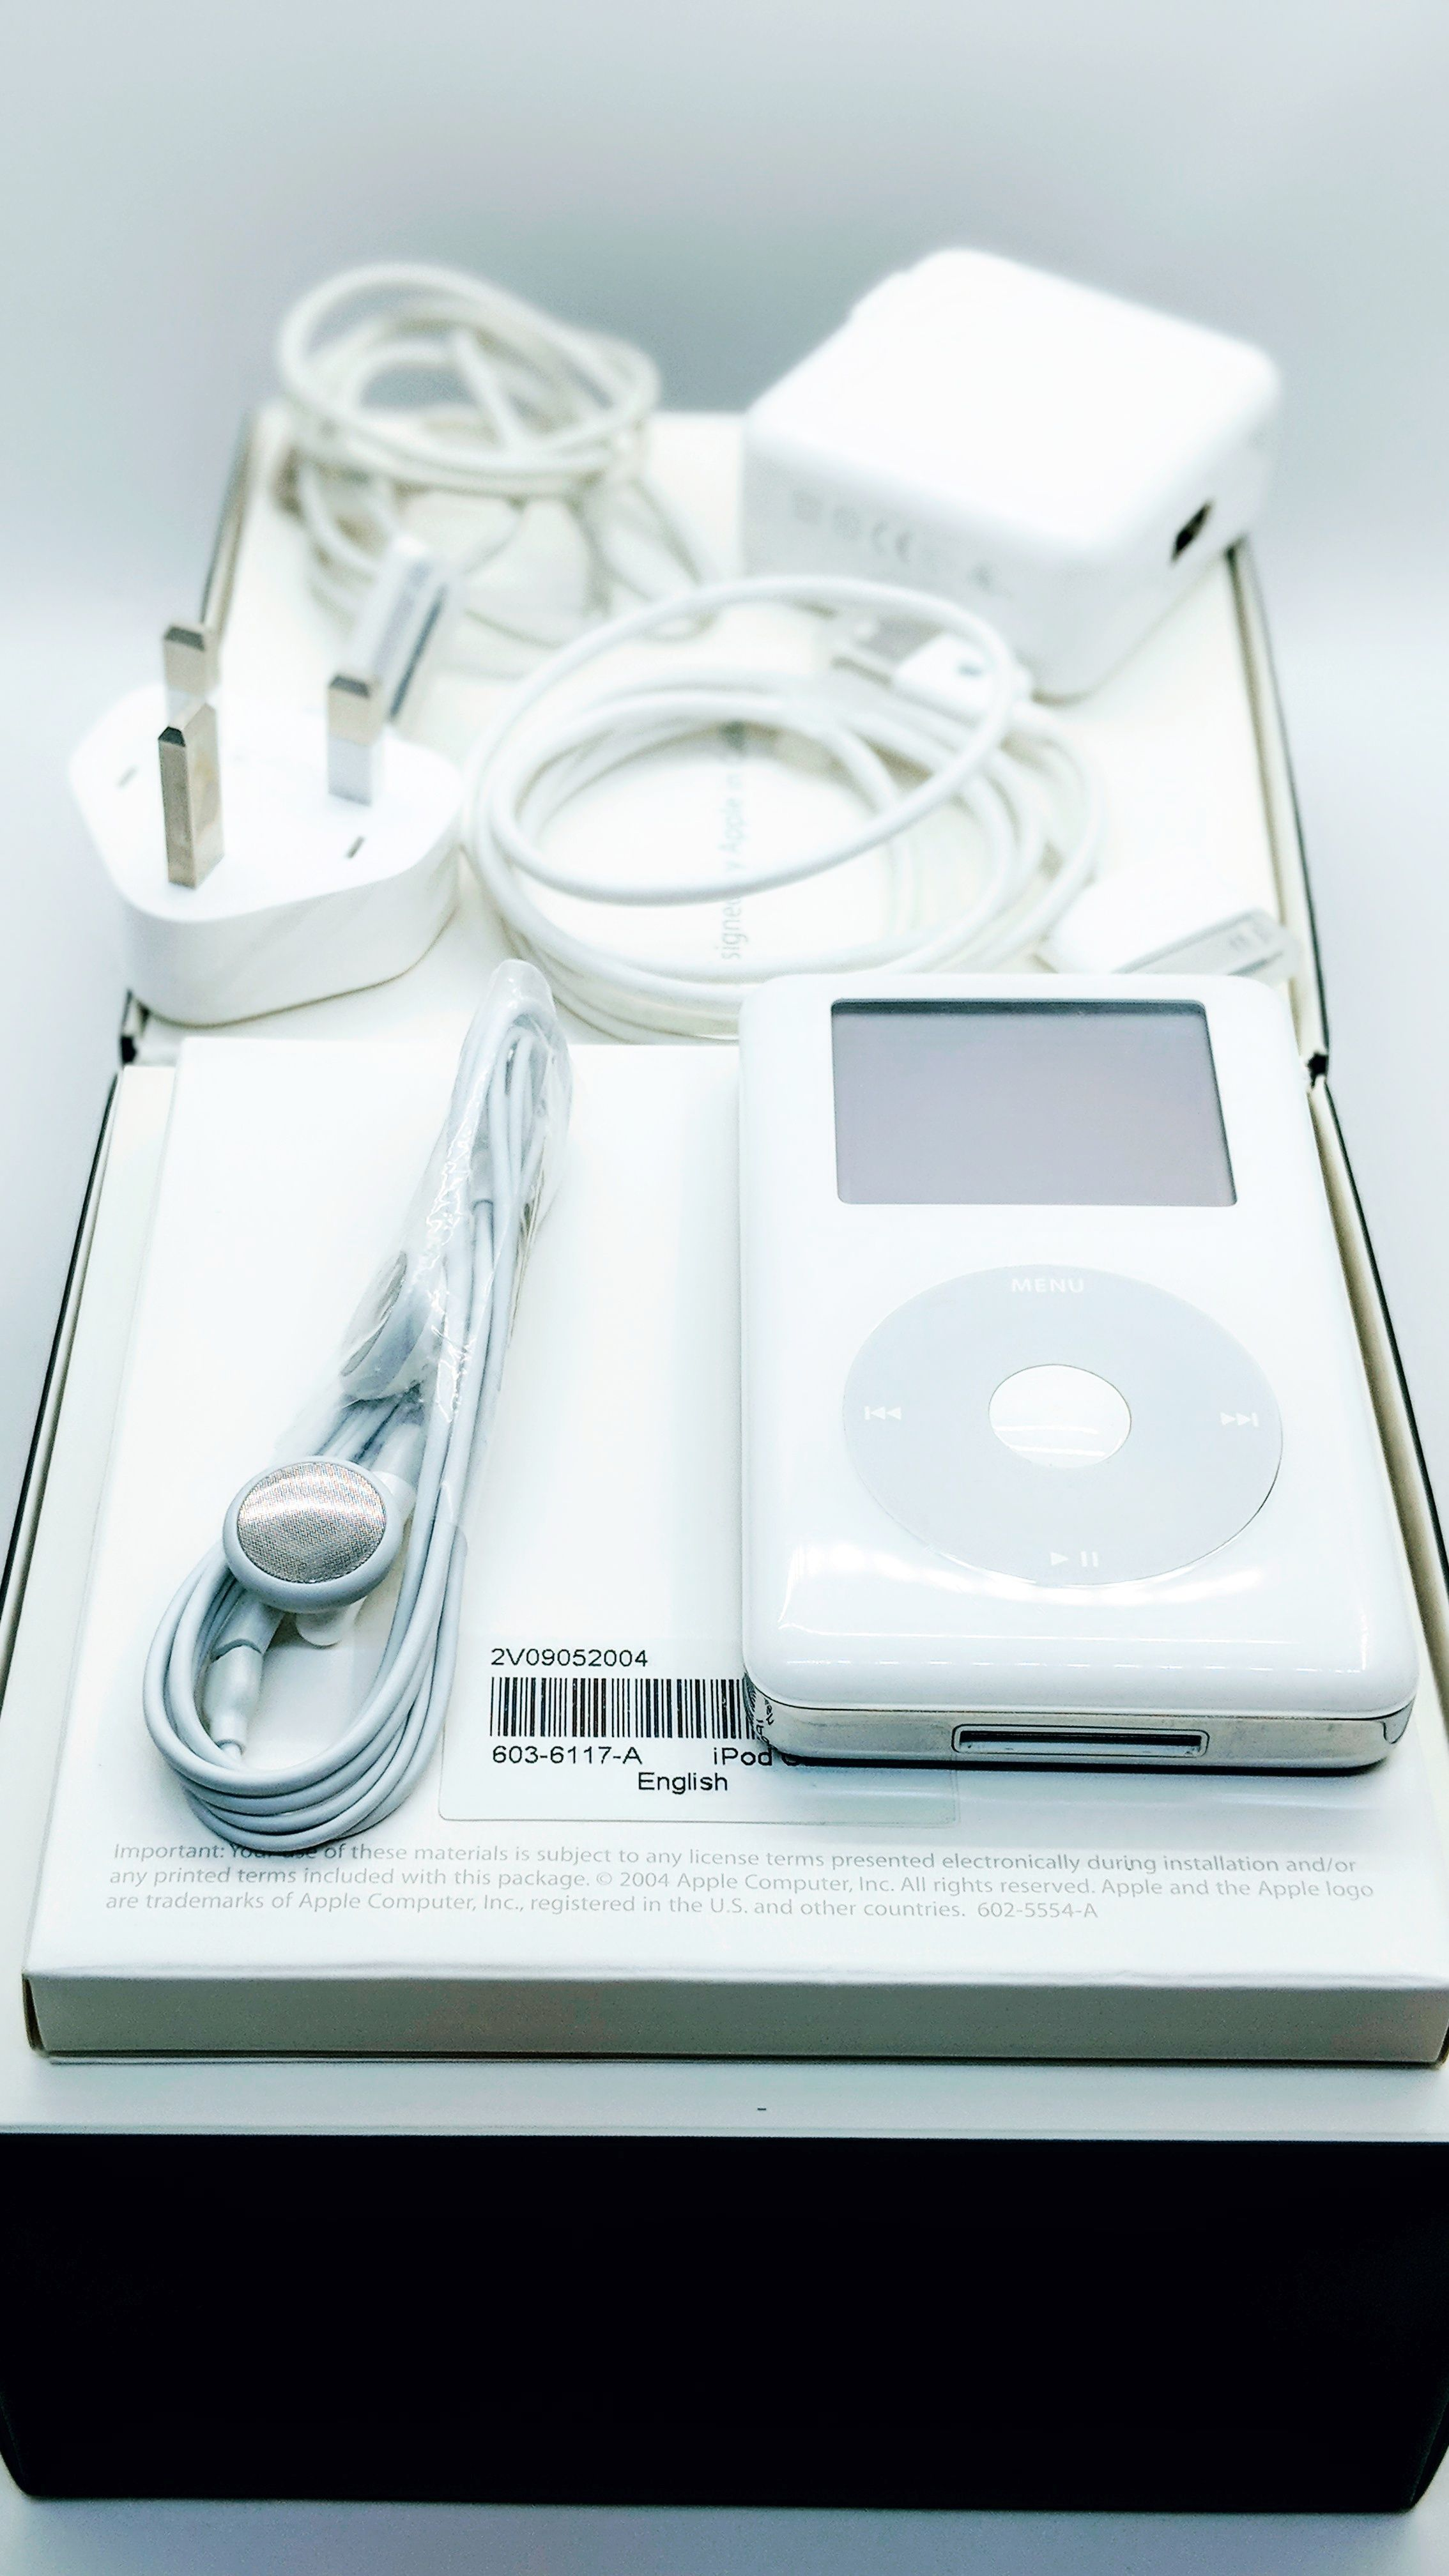 Pin By Green G On Id Black Friday Stores Ipod Classic Black Friday Gift